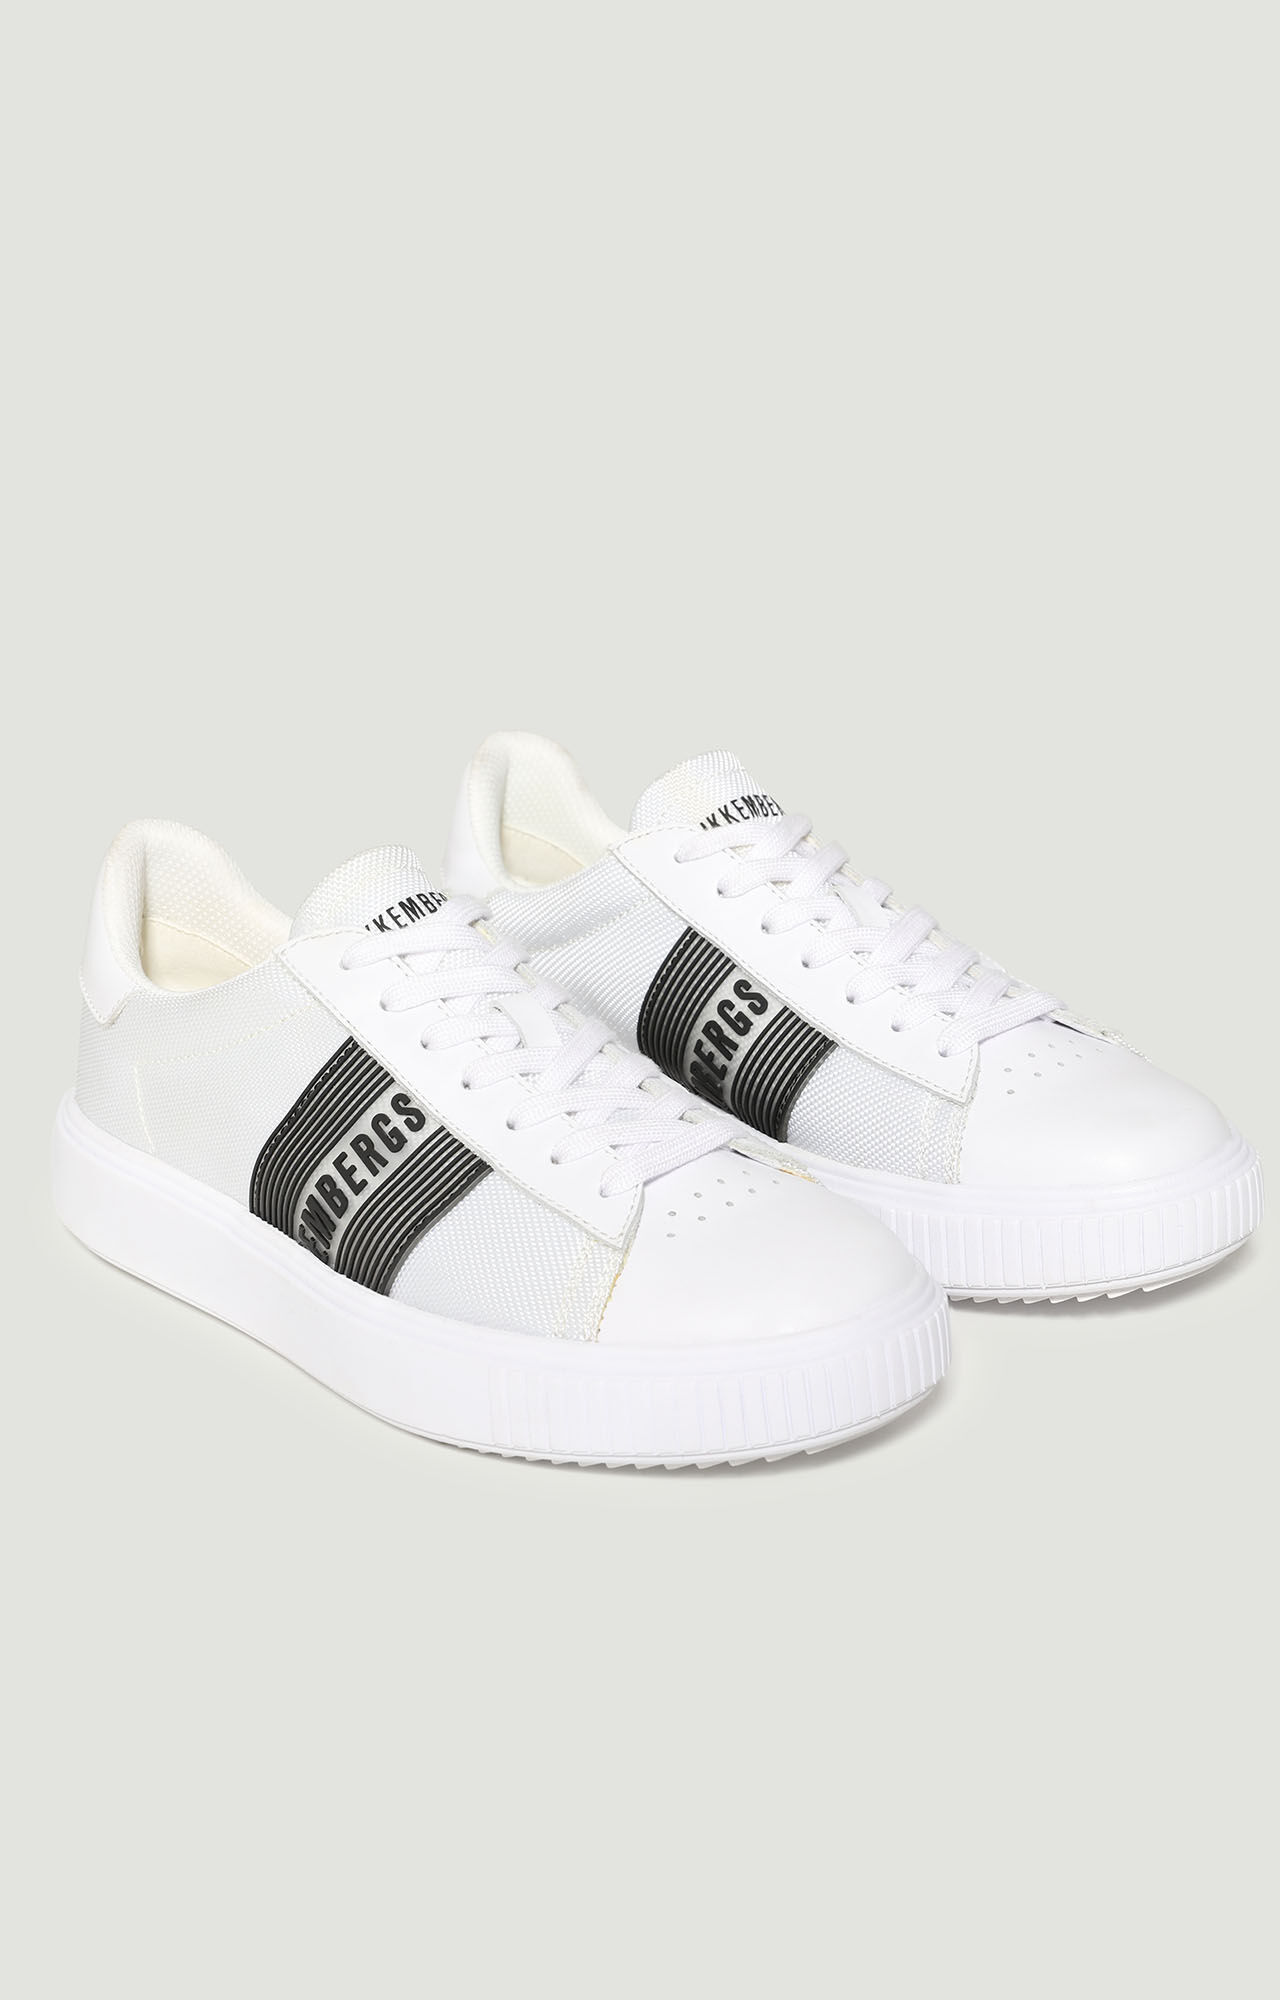 Cesan men's leather sneakers, WHITE